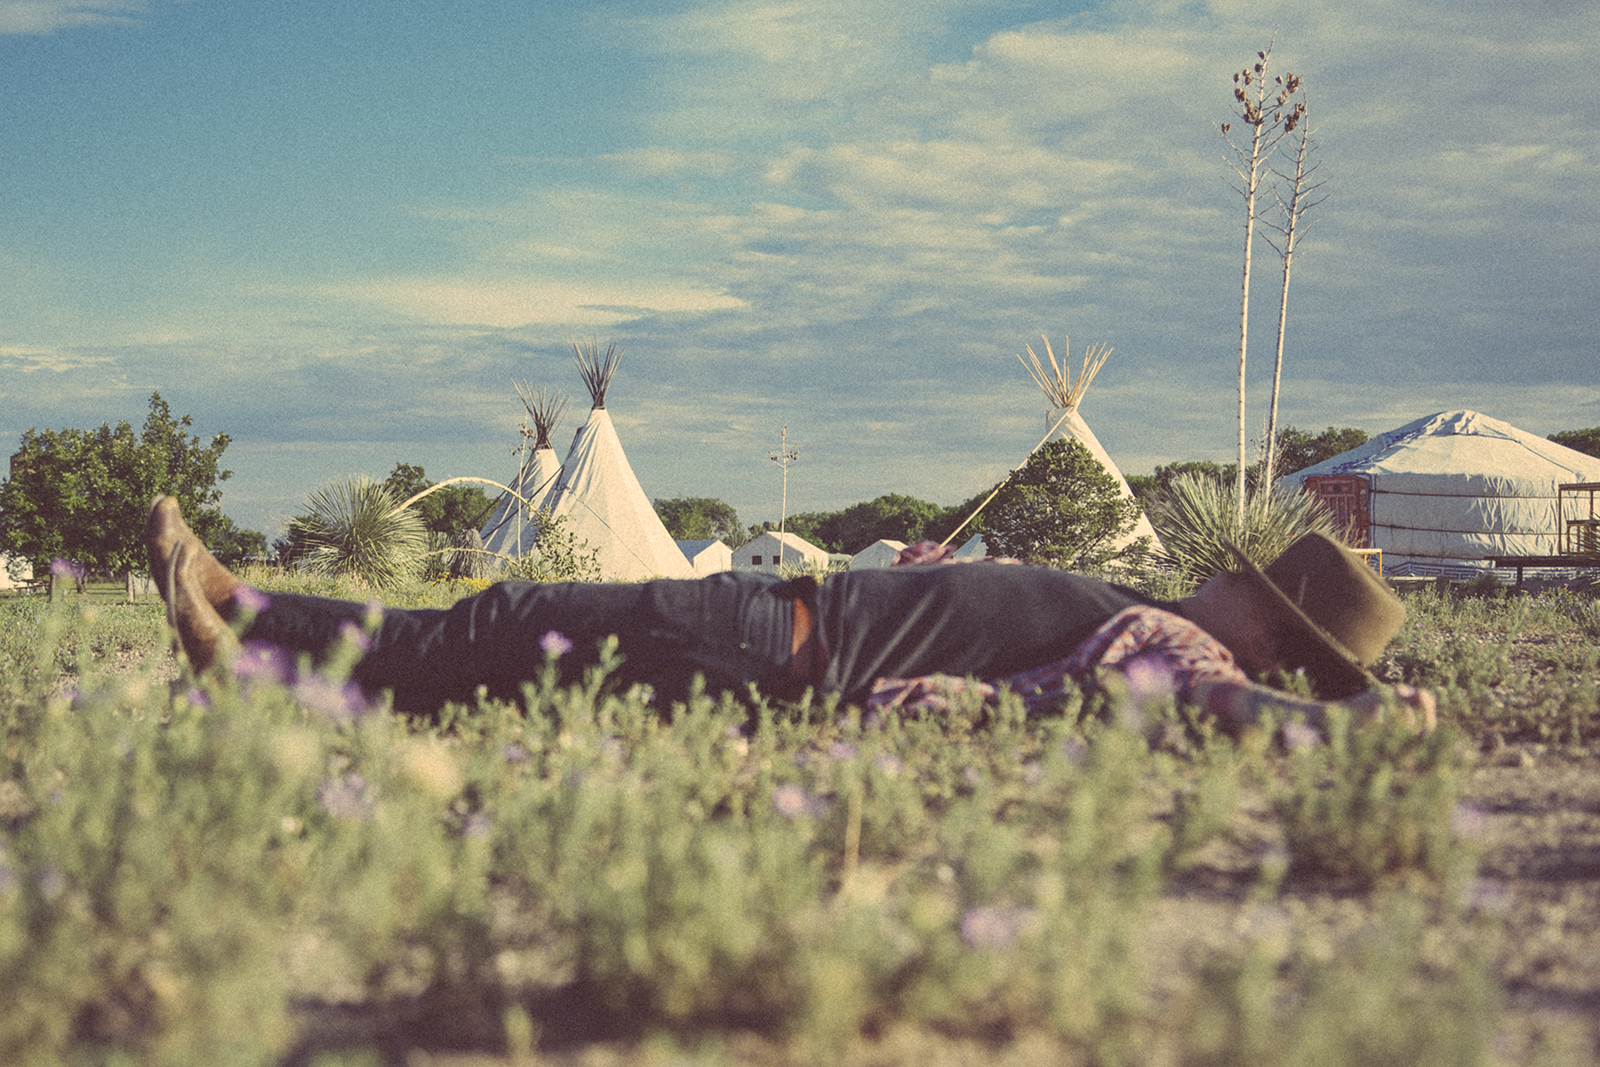 The Wild Feathers Marfa-6832SM.jpg